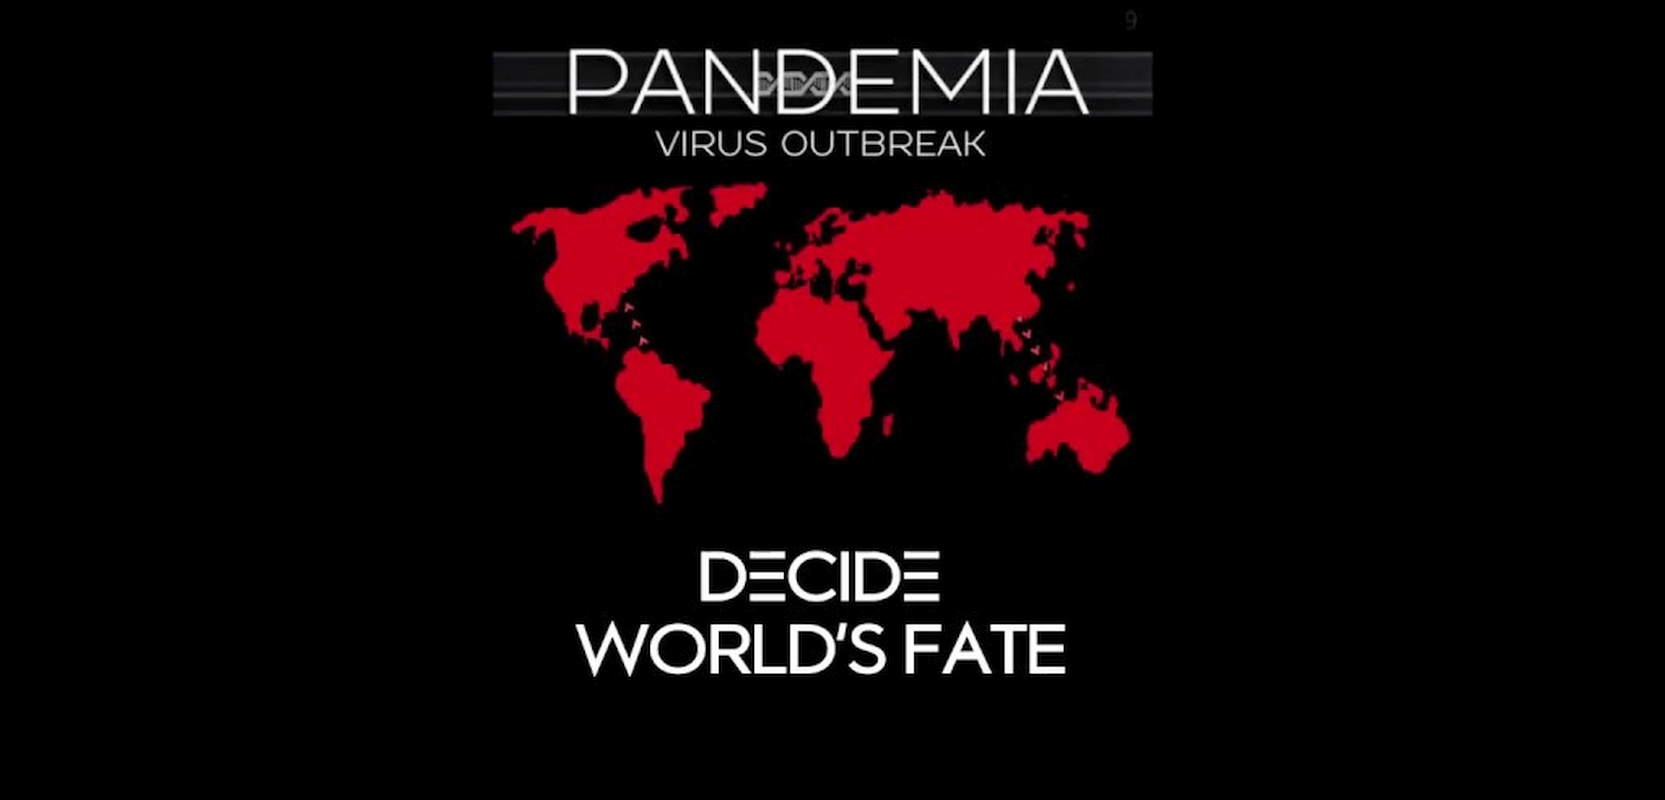 Pandemia: Virus Outbreak Card Game Spreads To Steam After Play Store Ban